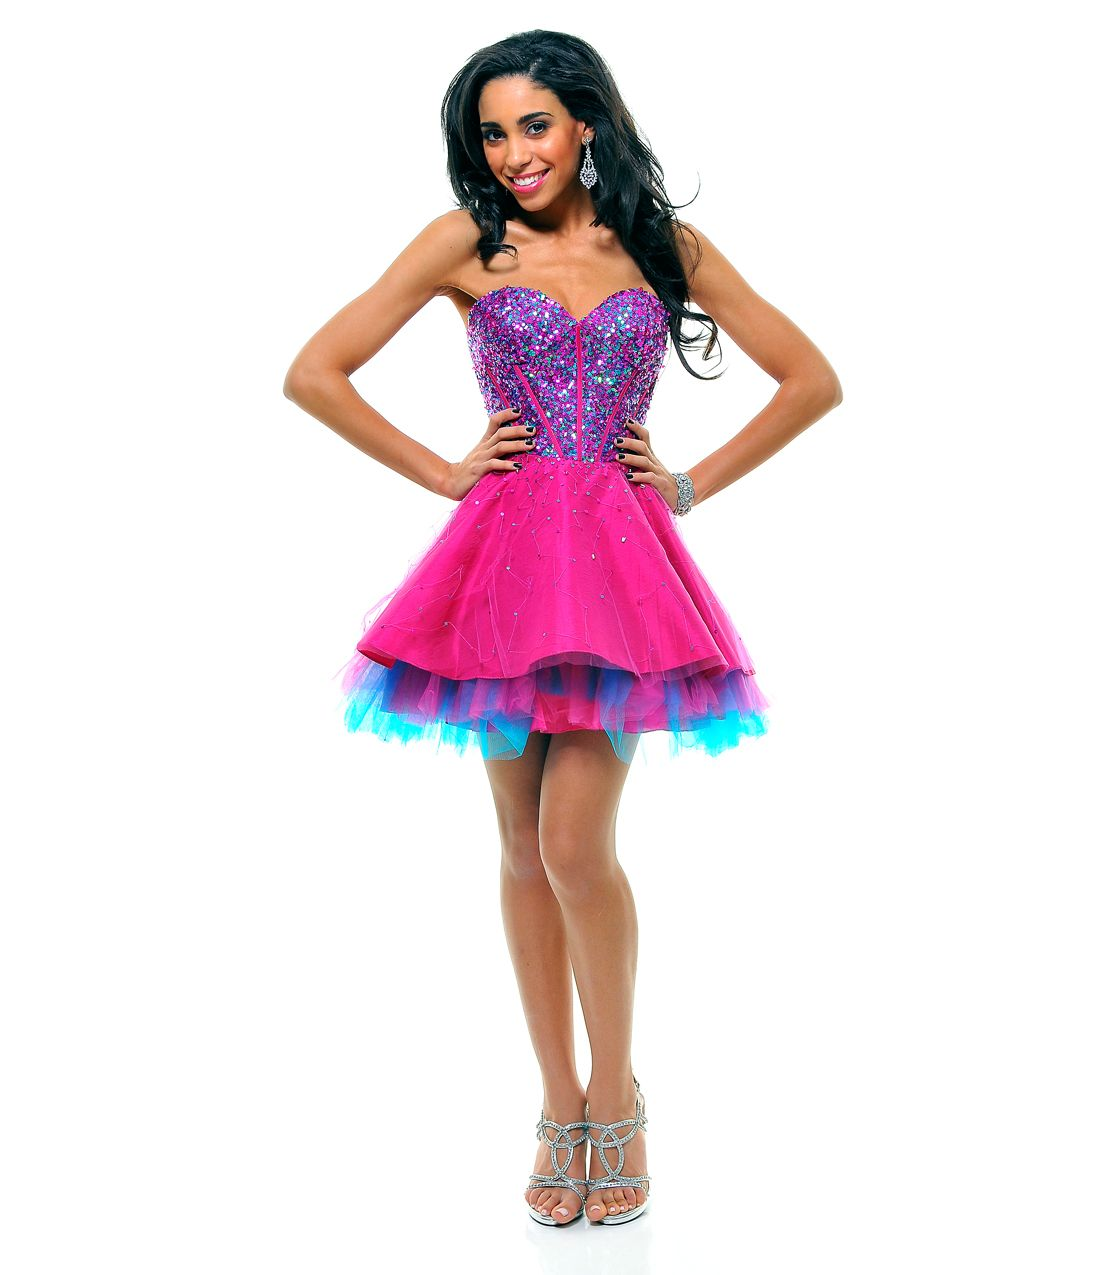 Tutu Dresses For Prom - Ocodea.com